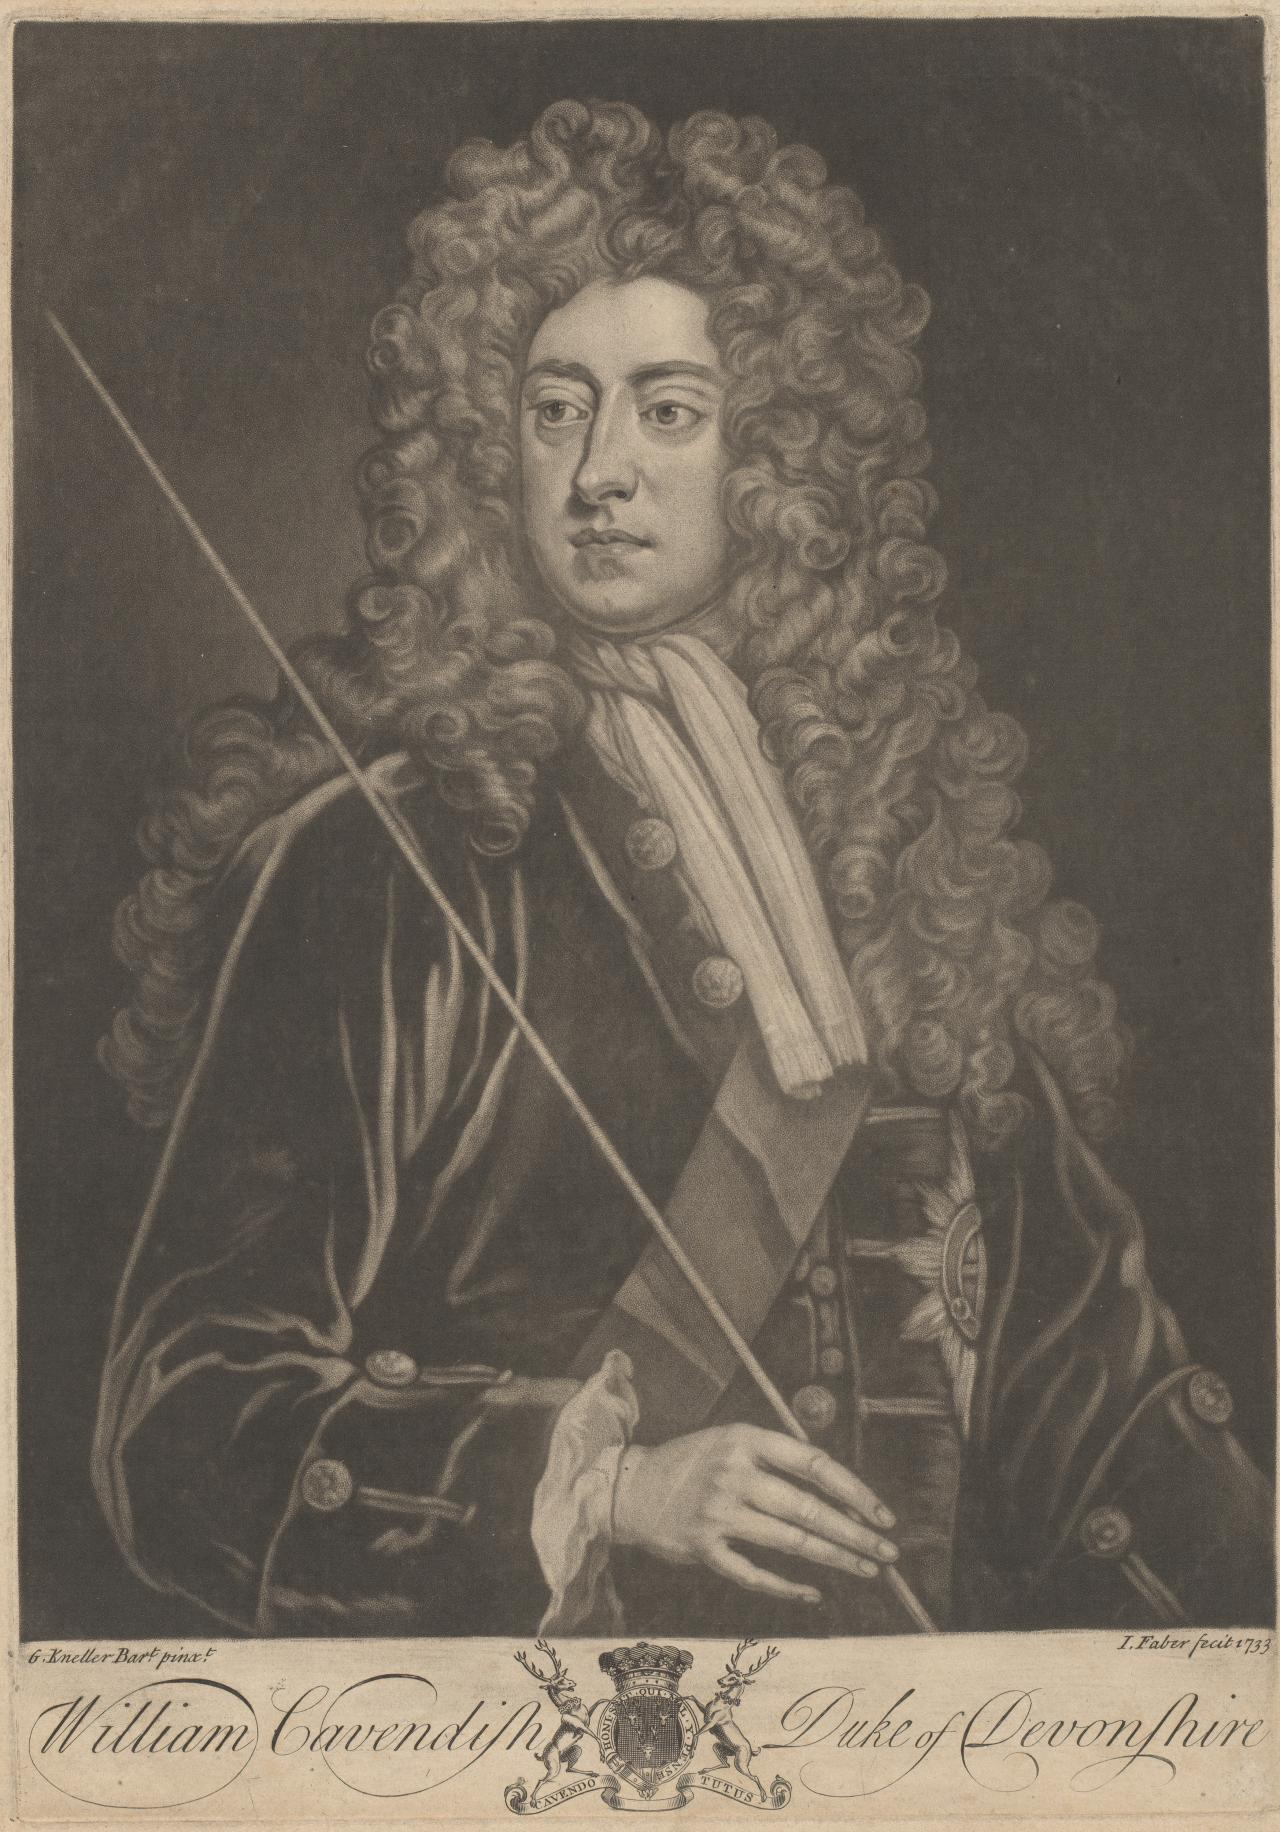 William Cavendish, Duke of Devonshire